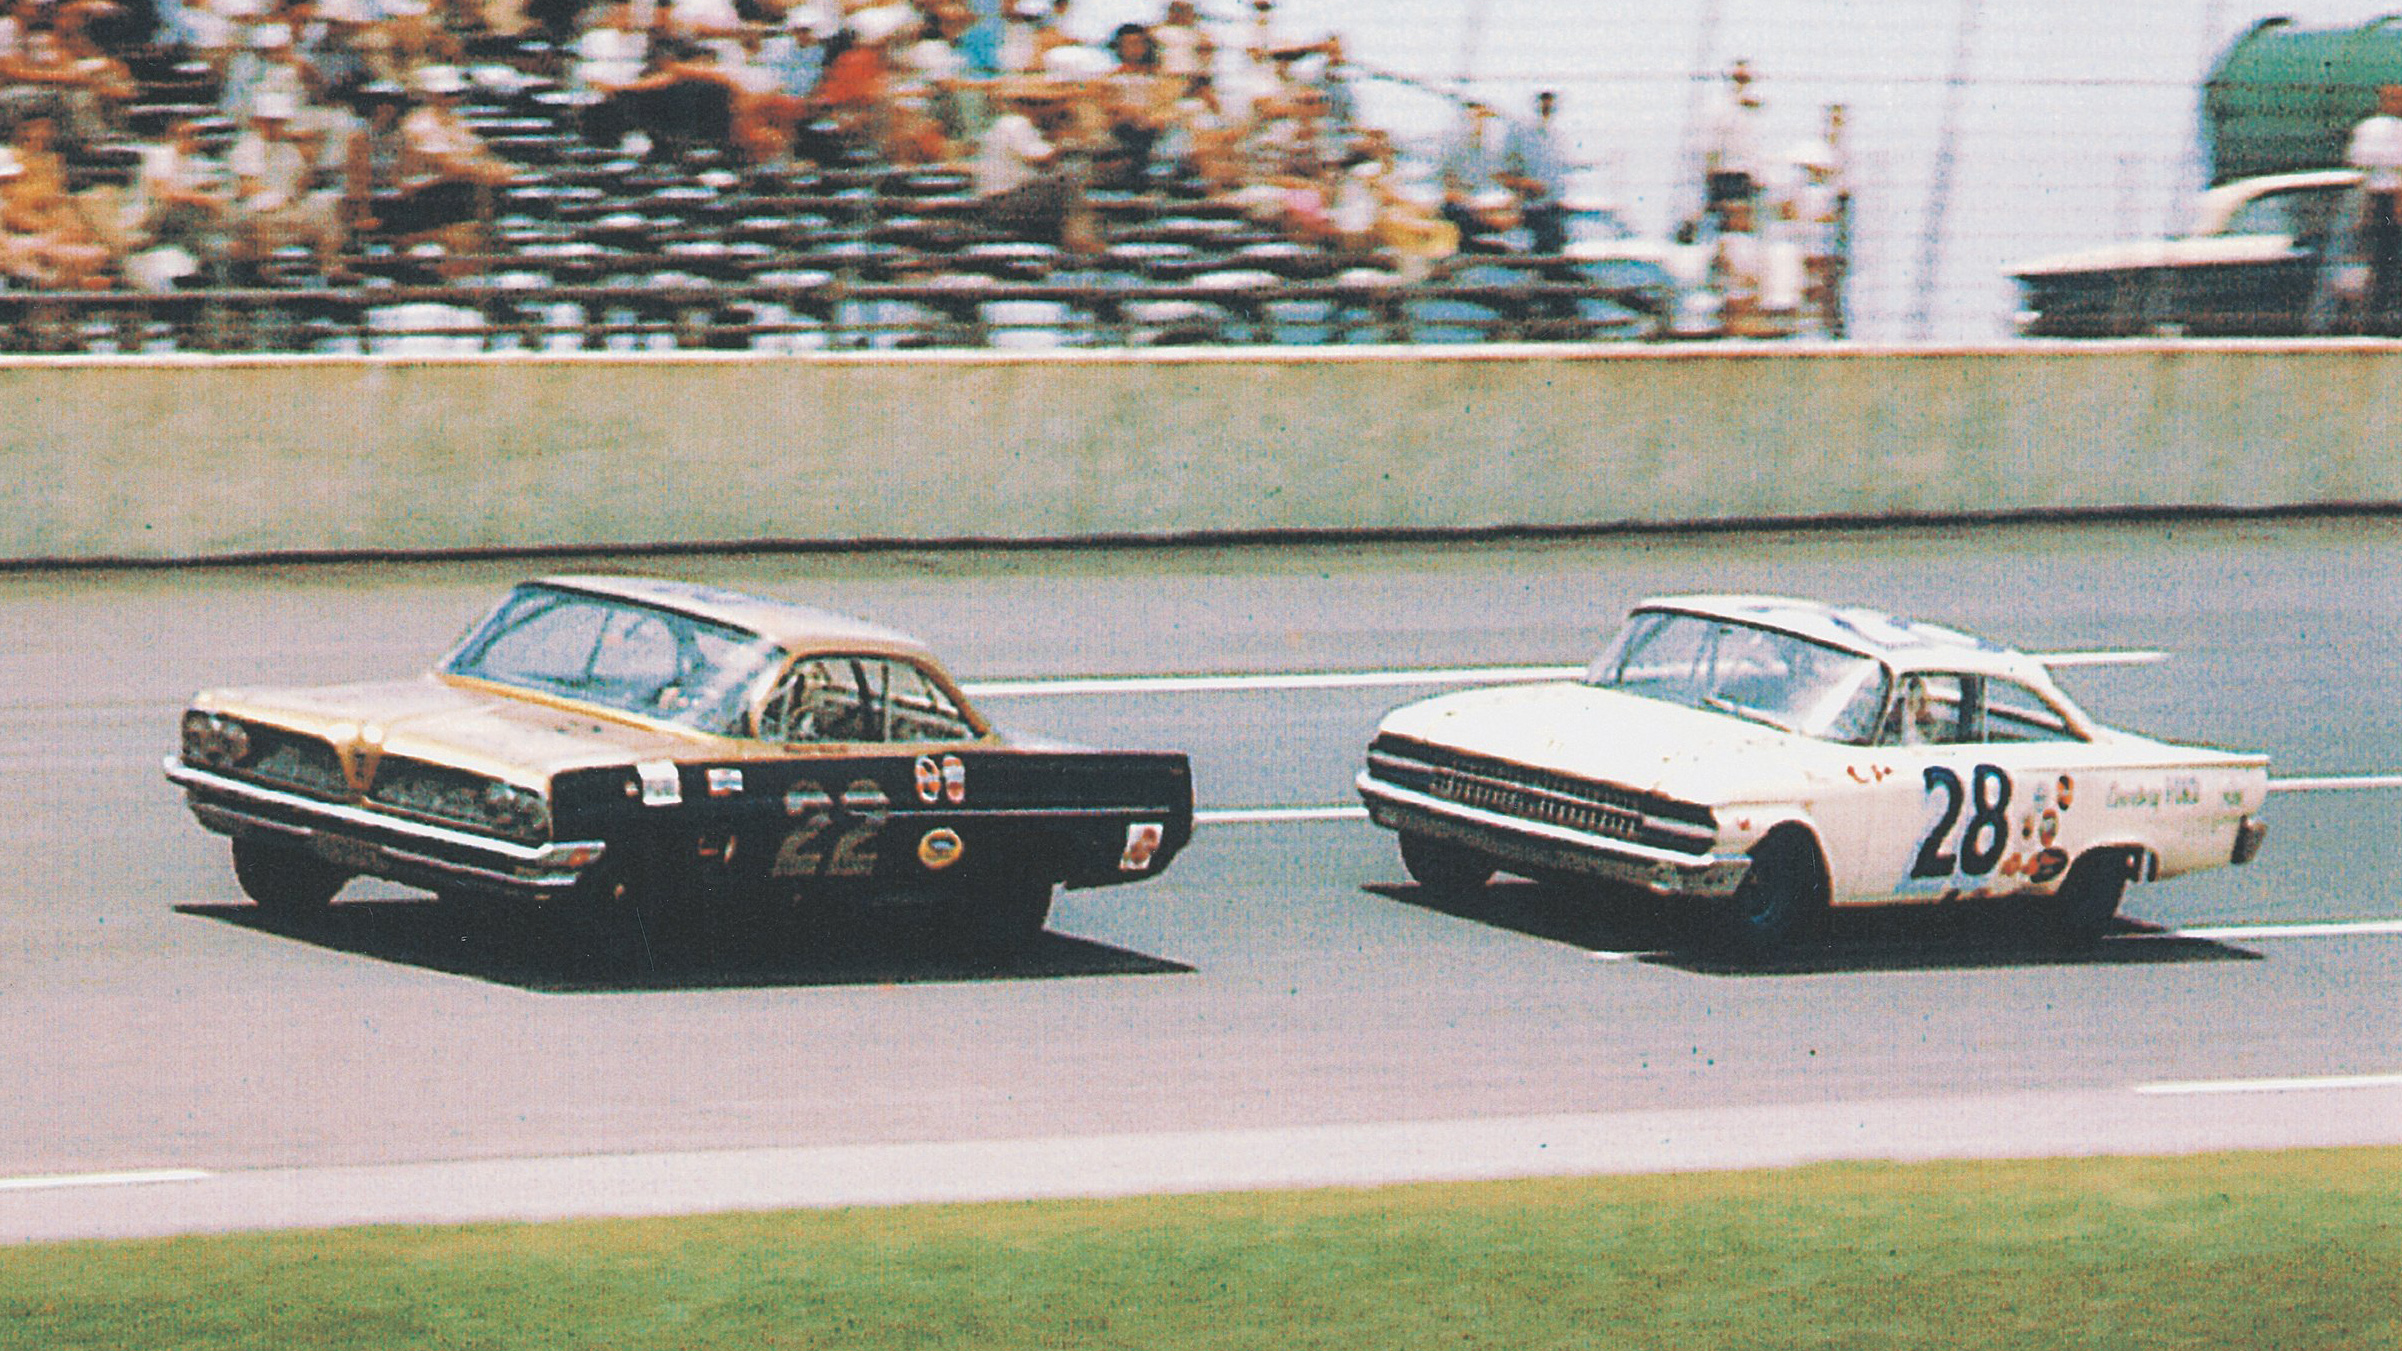 """DAYTONA BEACH, FL - FEBRUARY 18: Glenn """"Fireball"""" Roberts driver of the #22 Ponticac leads Fred Lorenzen driver of the #28 Ford during the 1962 NASCAR Winston Cup Daytona 500 at the Daytona International Speedway on February 18, 1962 in Daytona Beach, Florida. Fireball Roberts would go on to win the Daytona 500. (Photo by ISC Archives via Getty Images)"""